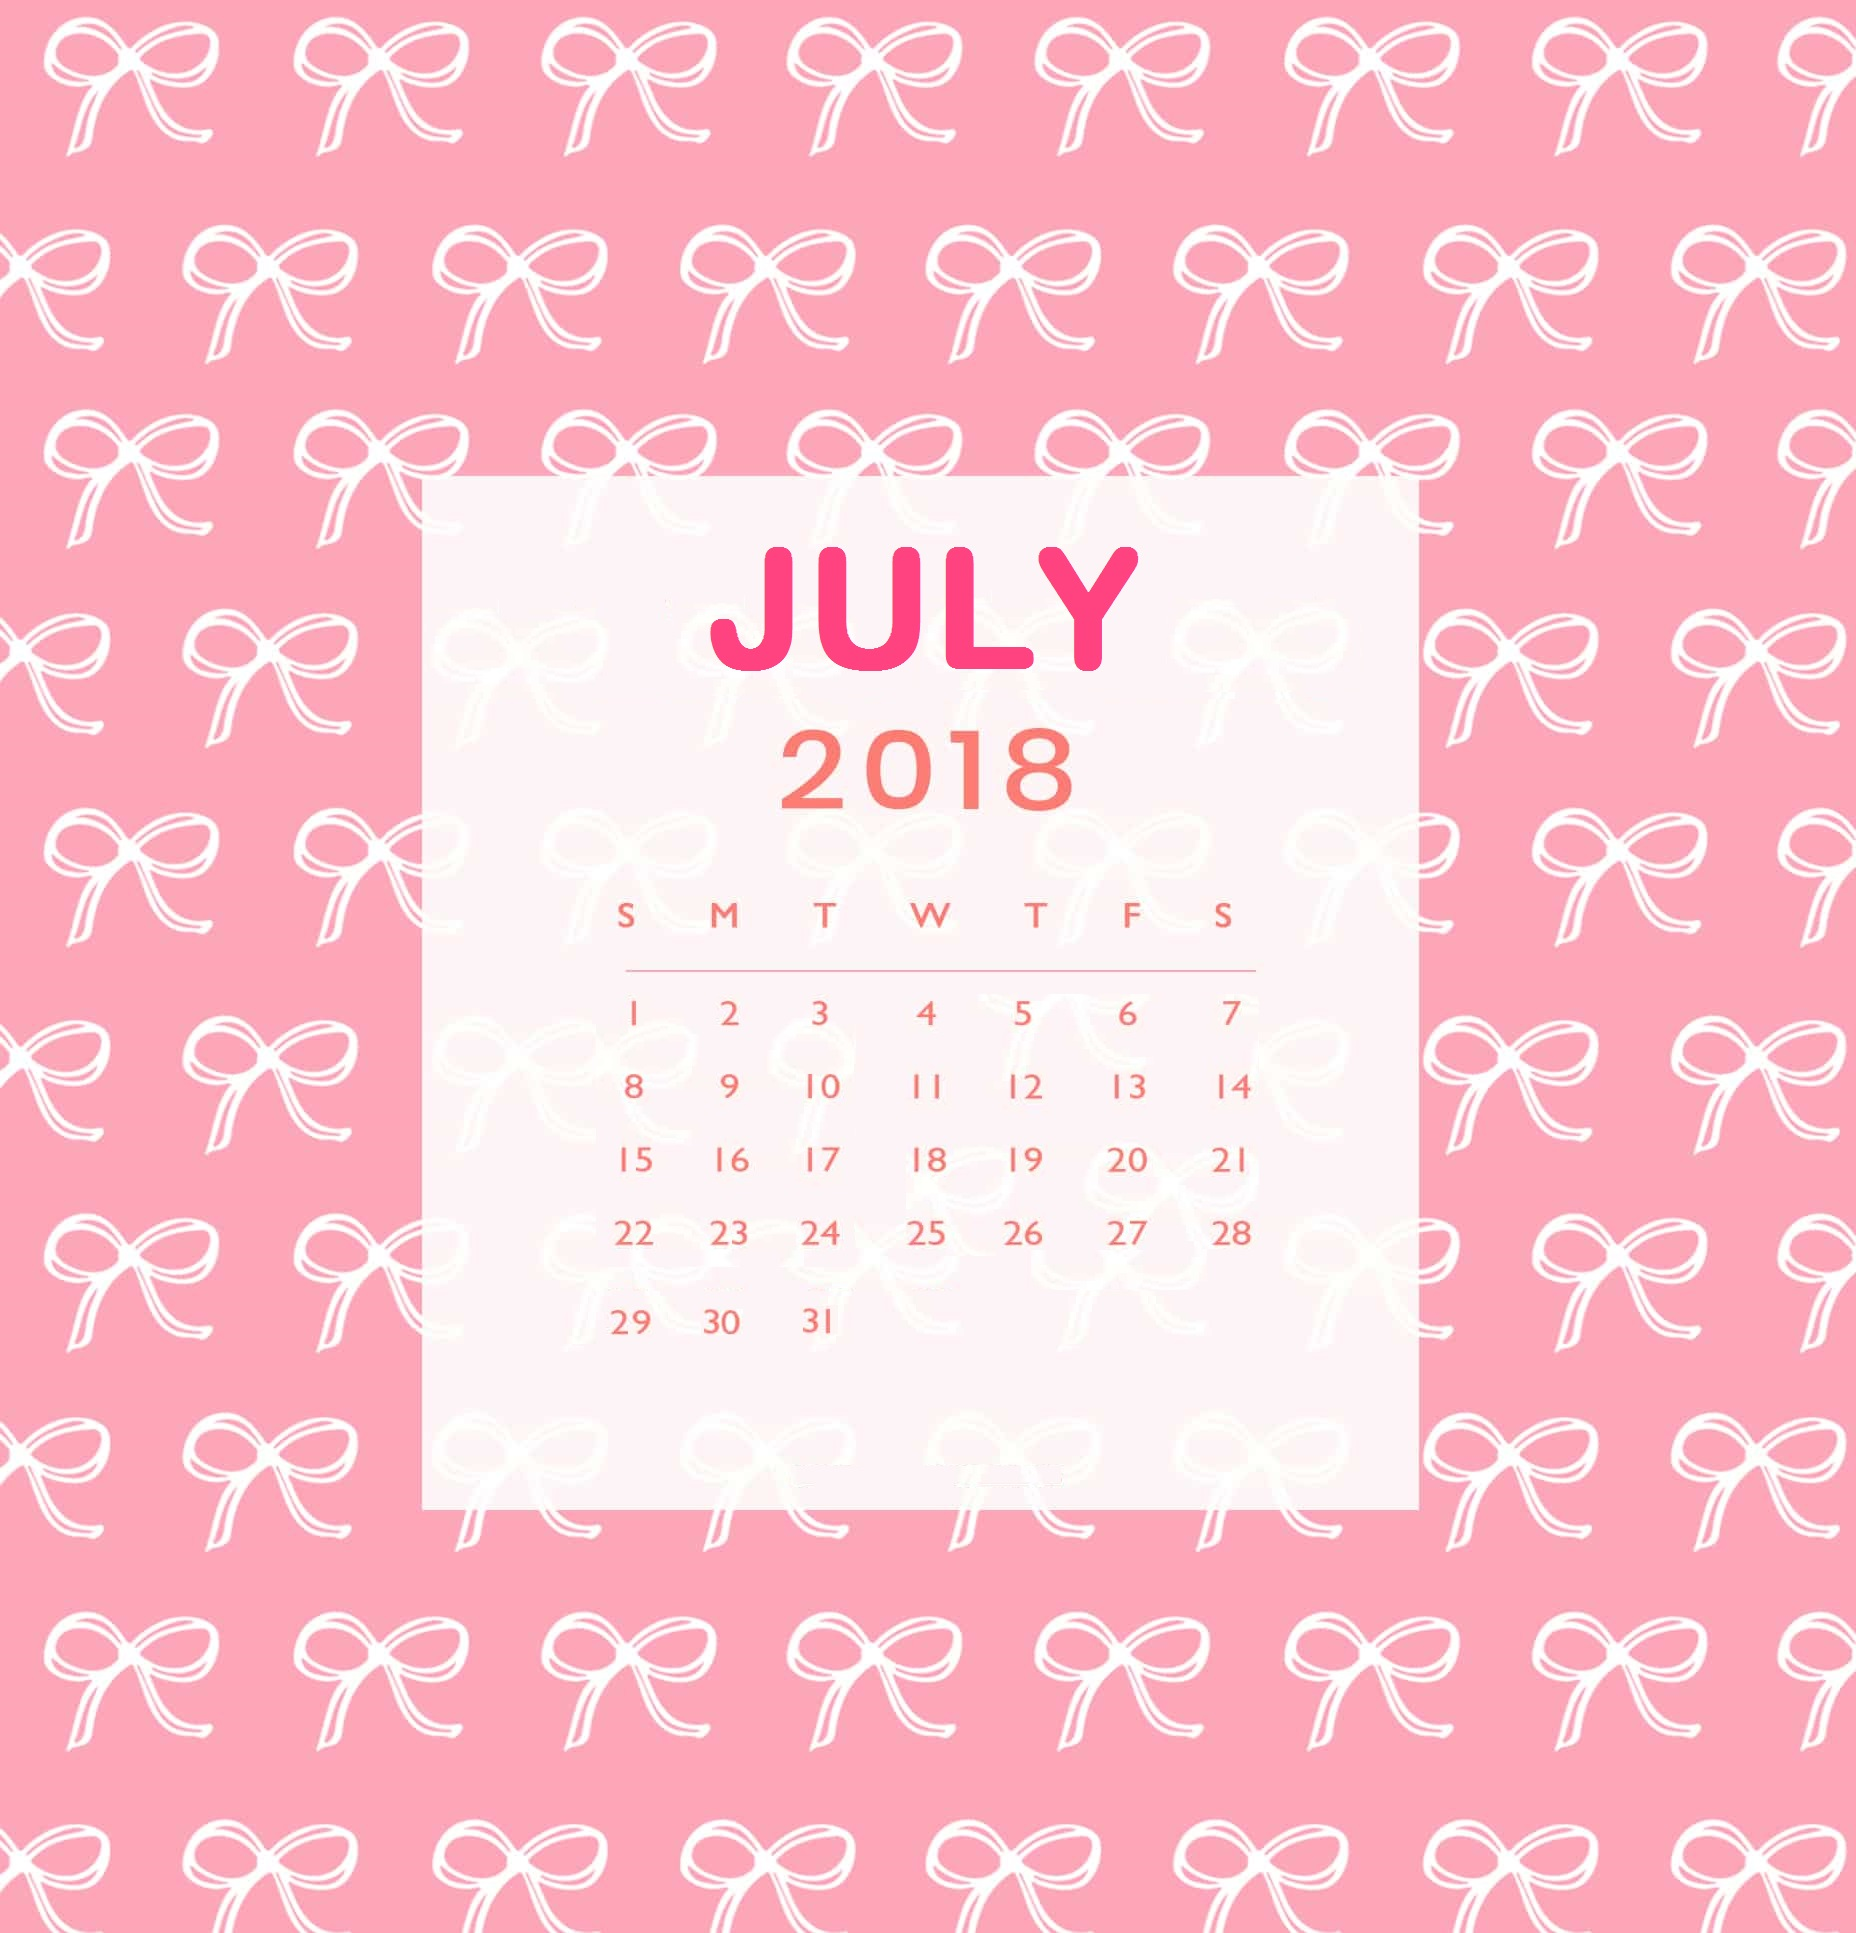 Cute July 2018 Calendar Pink Images Pictures JPG PNG   July 2019 1856x1933